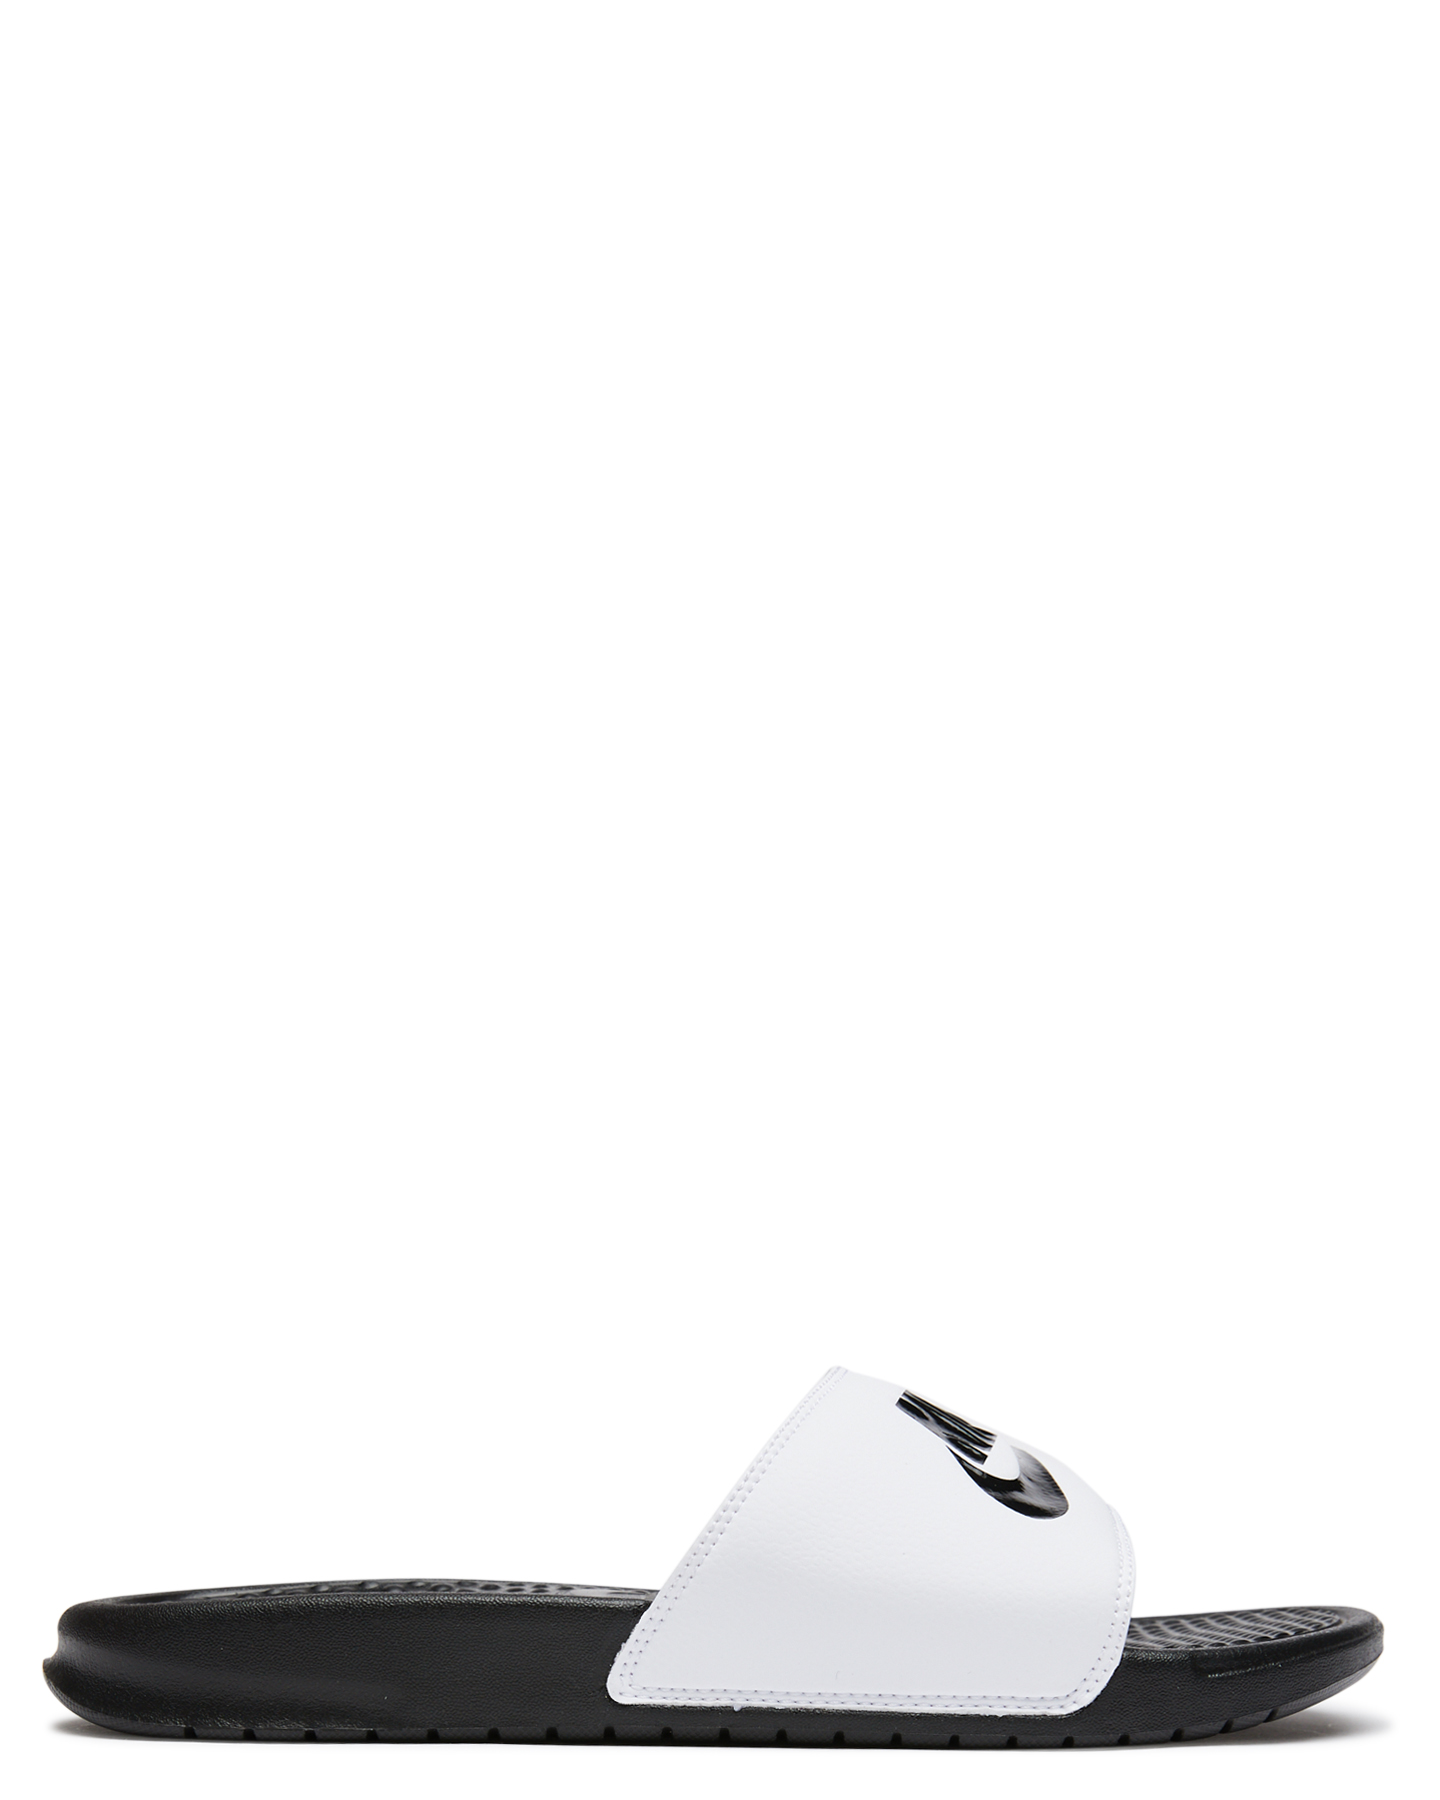 eaa907690 WHITE BLACK WOMENS FOOTWEAR NIKE SLIDES - SS343880-100W ...